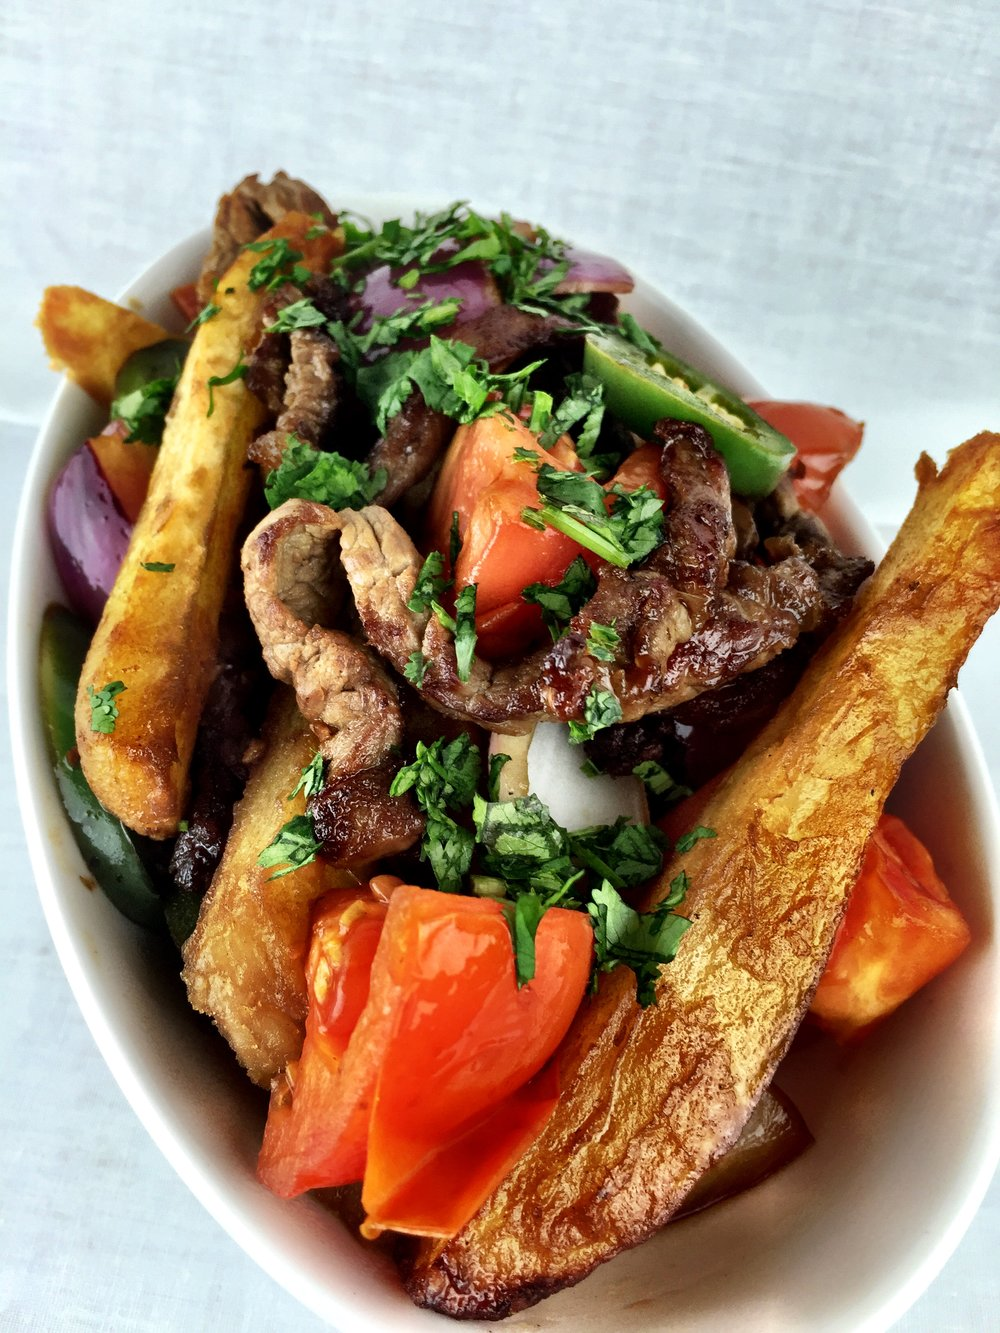 The Peruvian Fries!